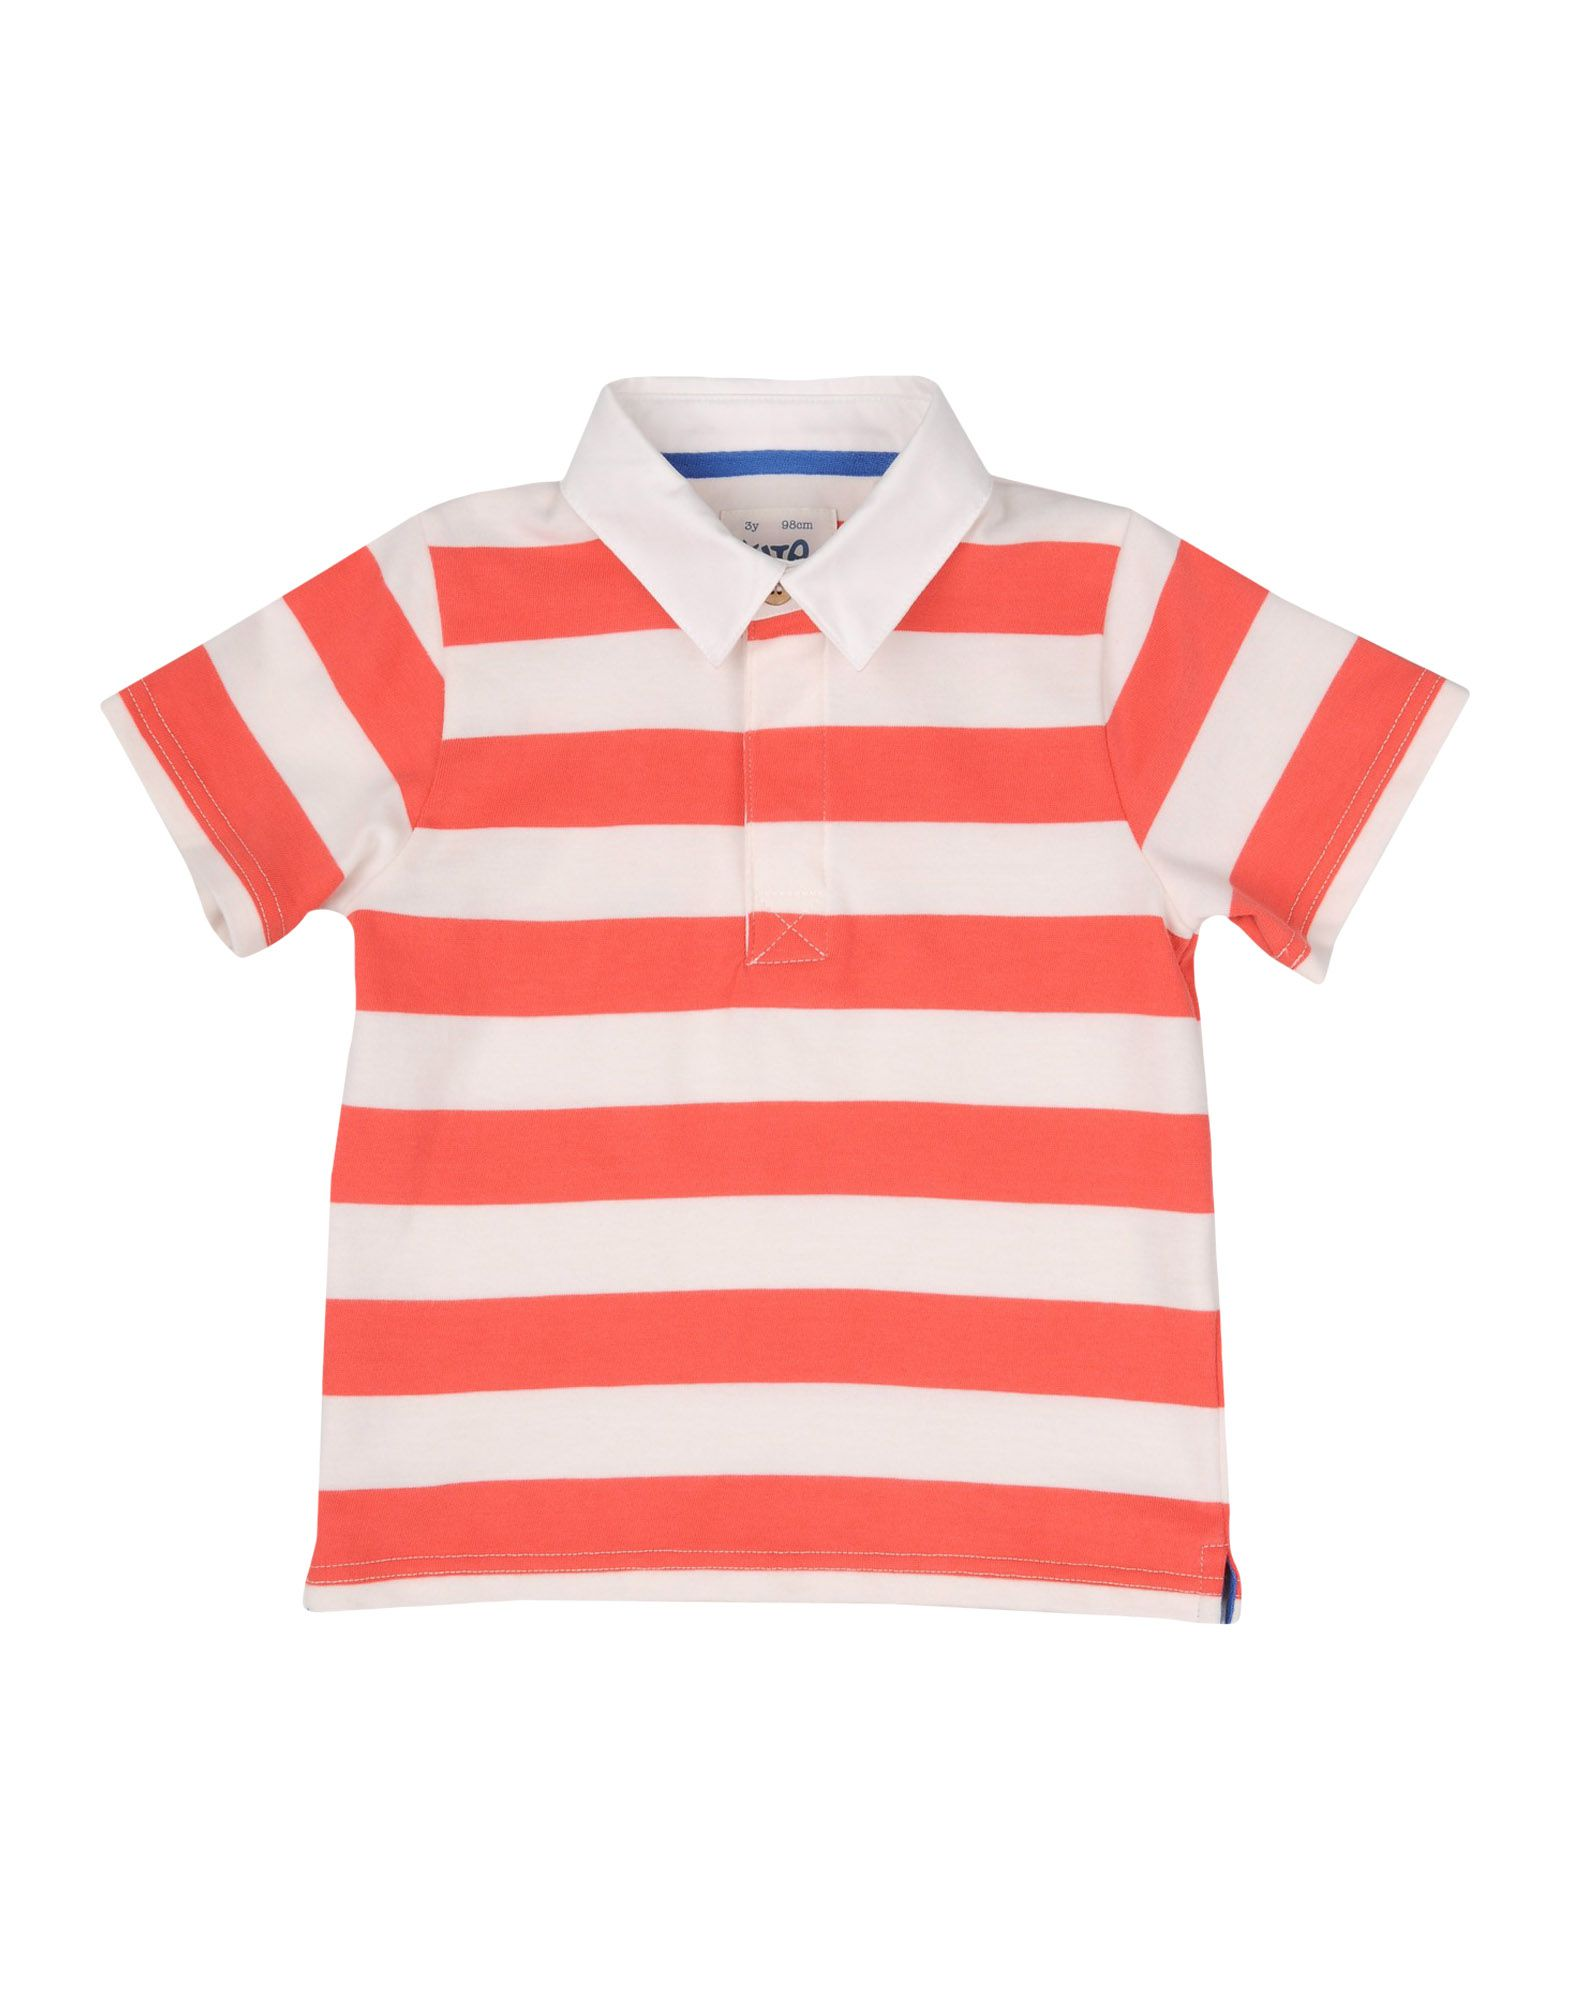 KITE Polo shirts